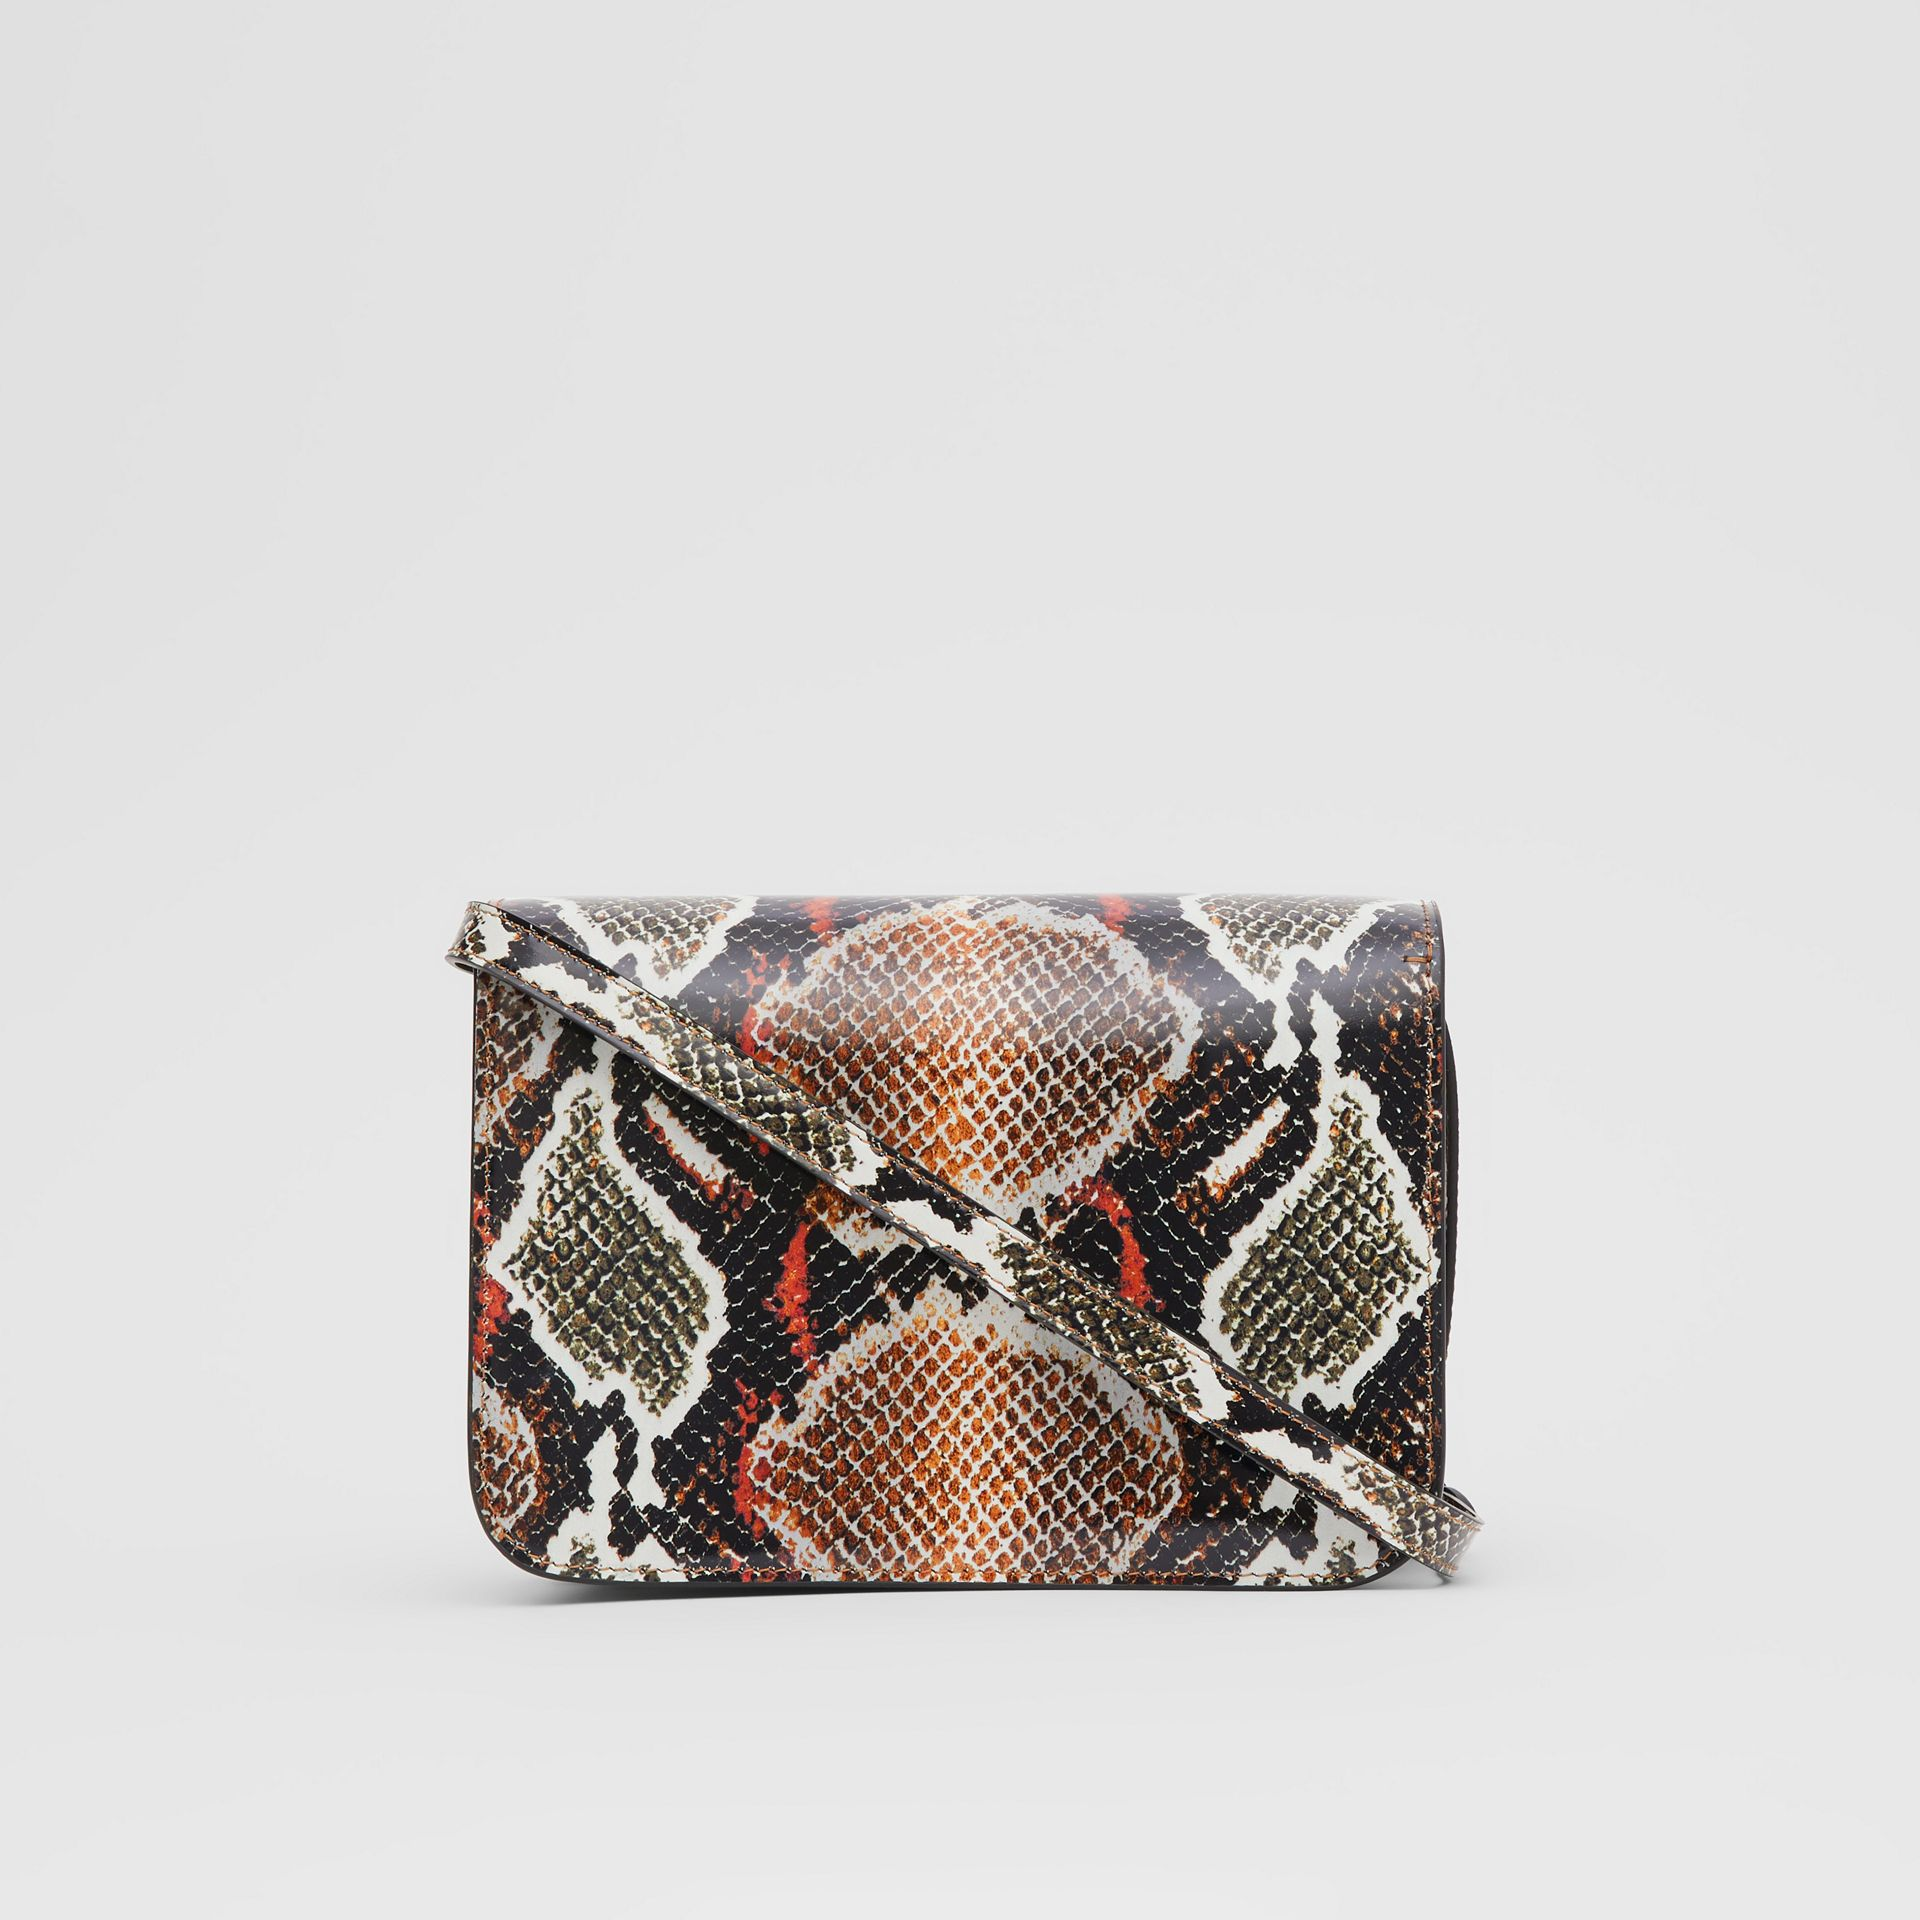 Small Python Print Leather TB Bag in Soft Cocoa - Women | Burberry - gallery image 5